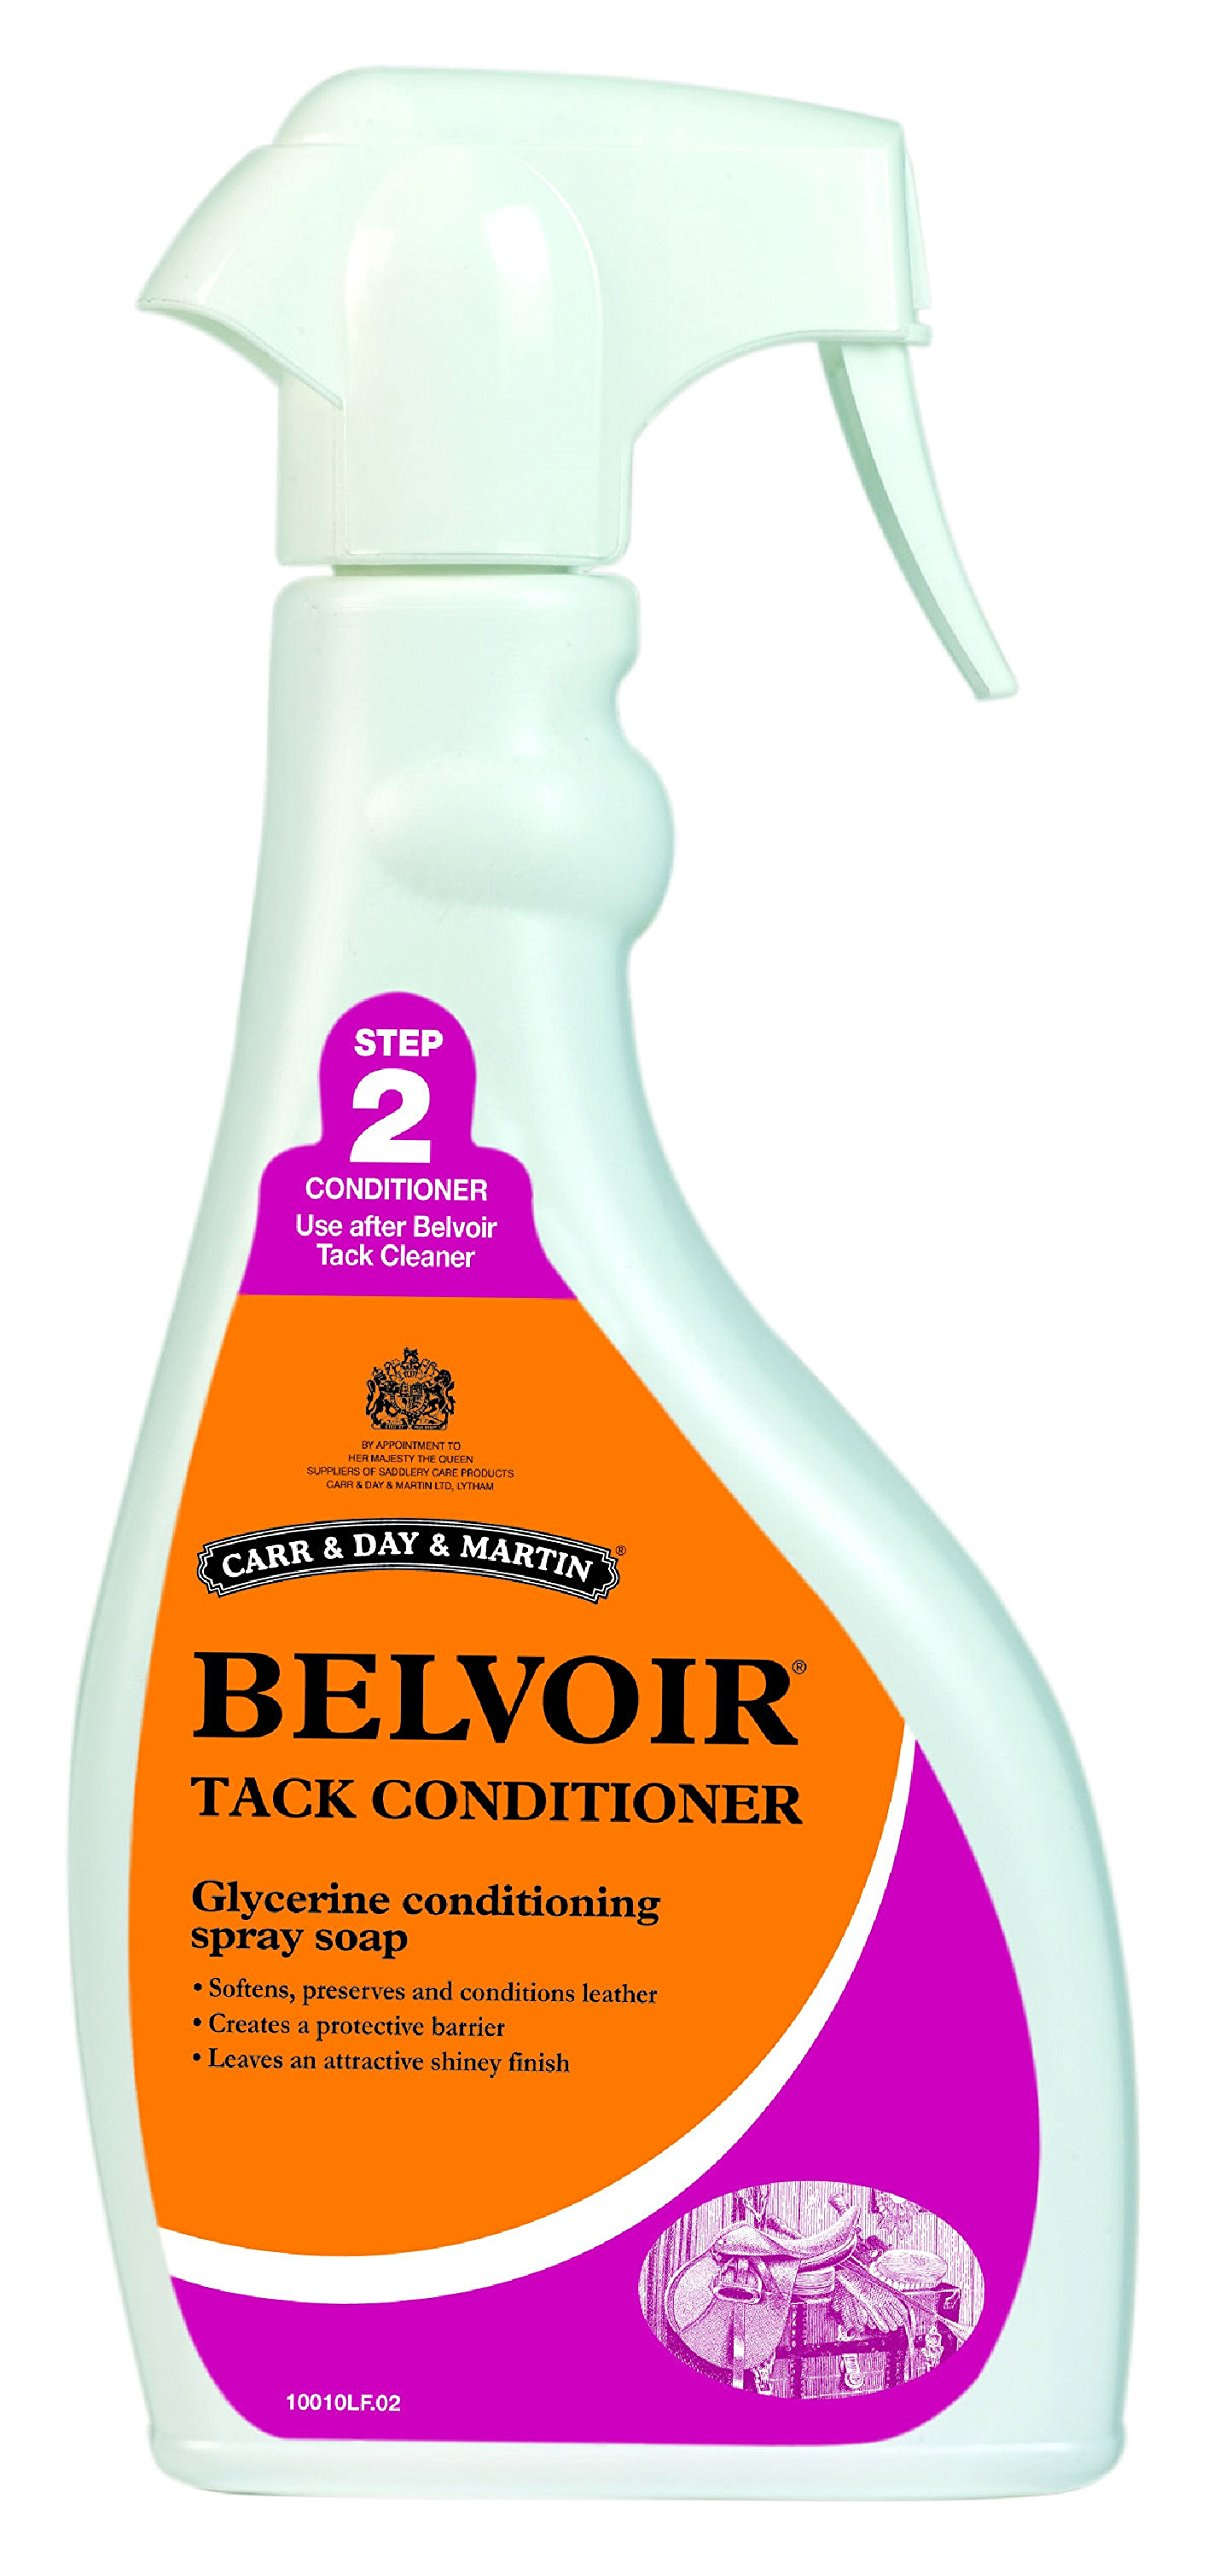 Carr and Day and Martin Belvoir Tack Conditioner Spray 500 ml